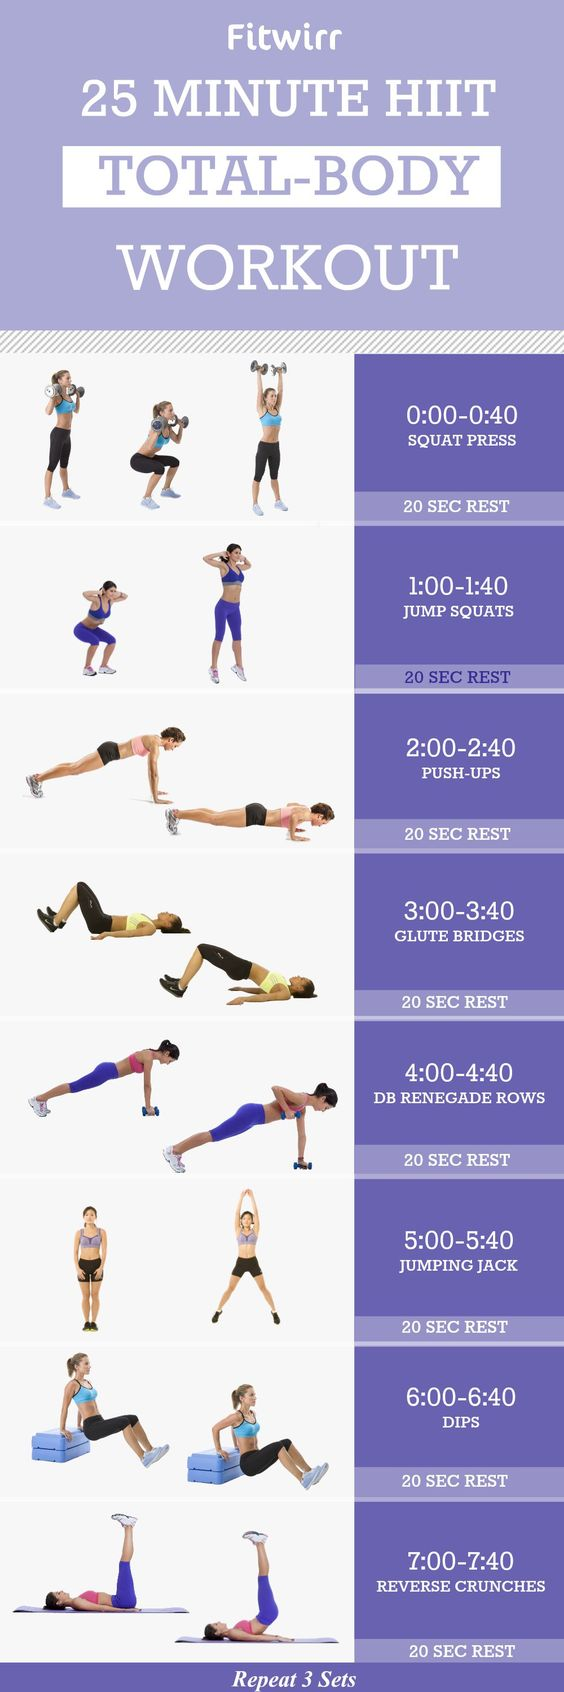 Full Body Workout For Toning And Weight Loss